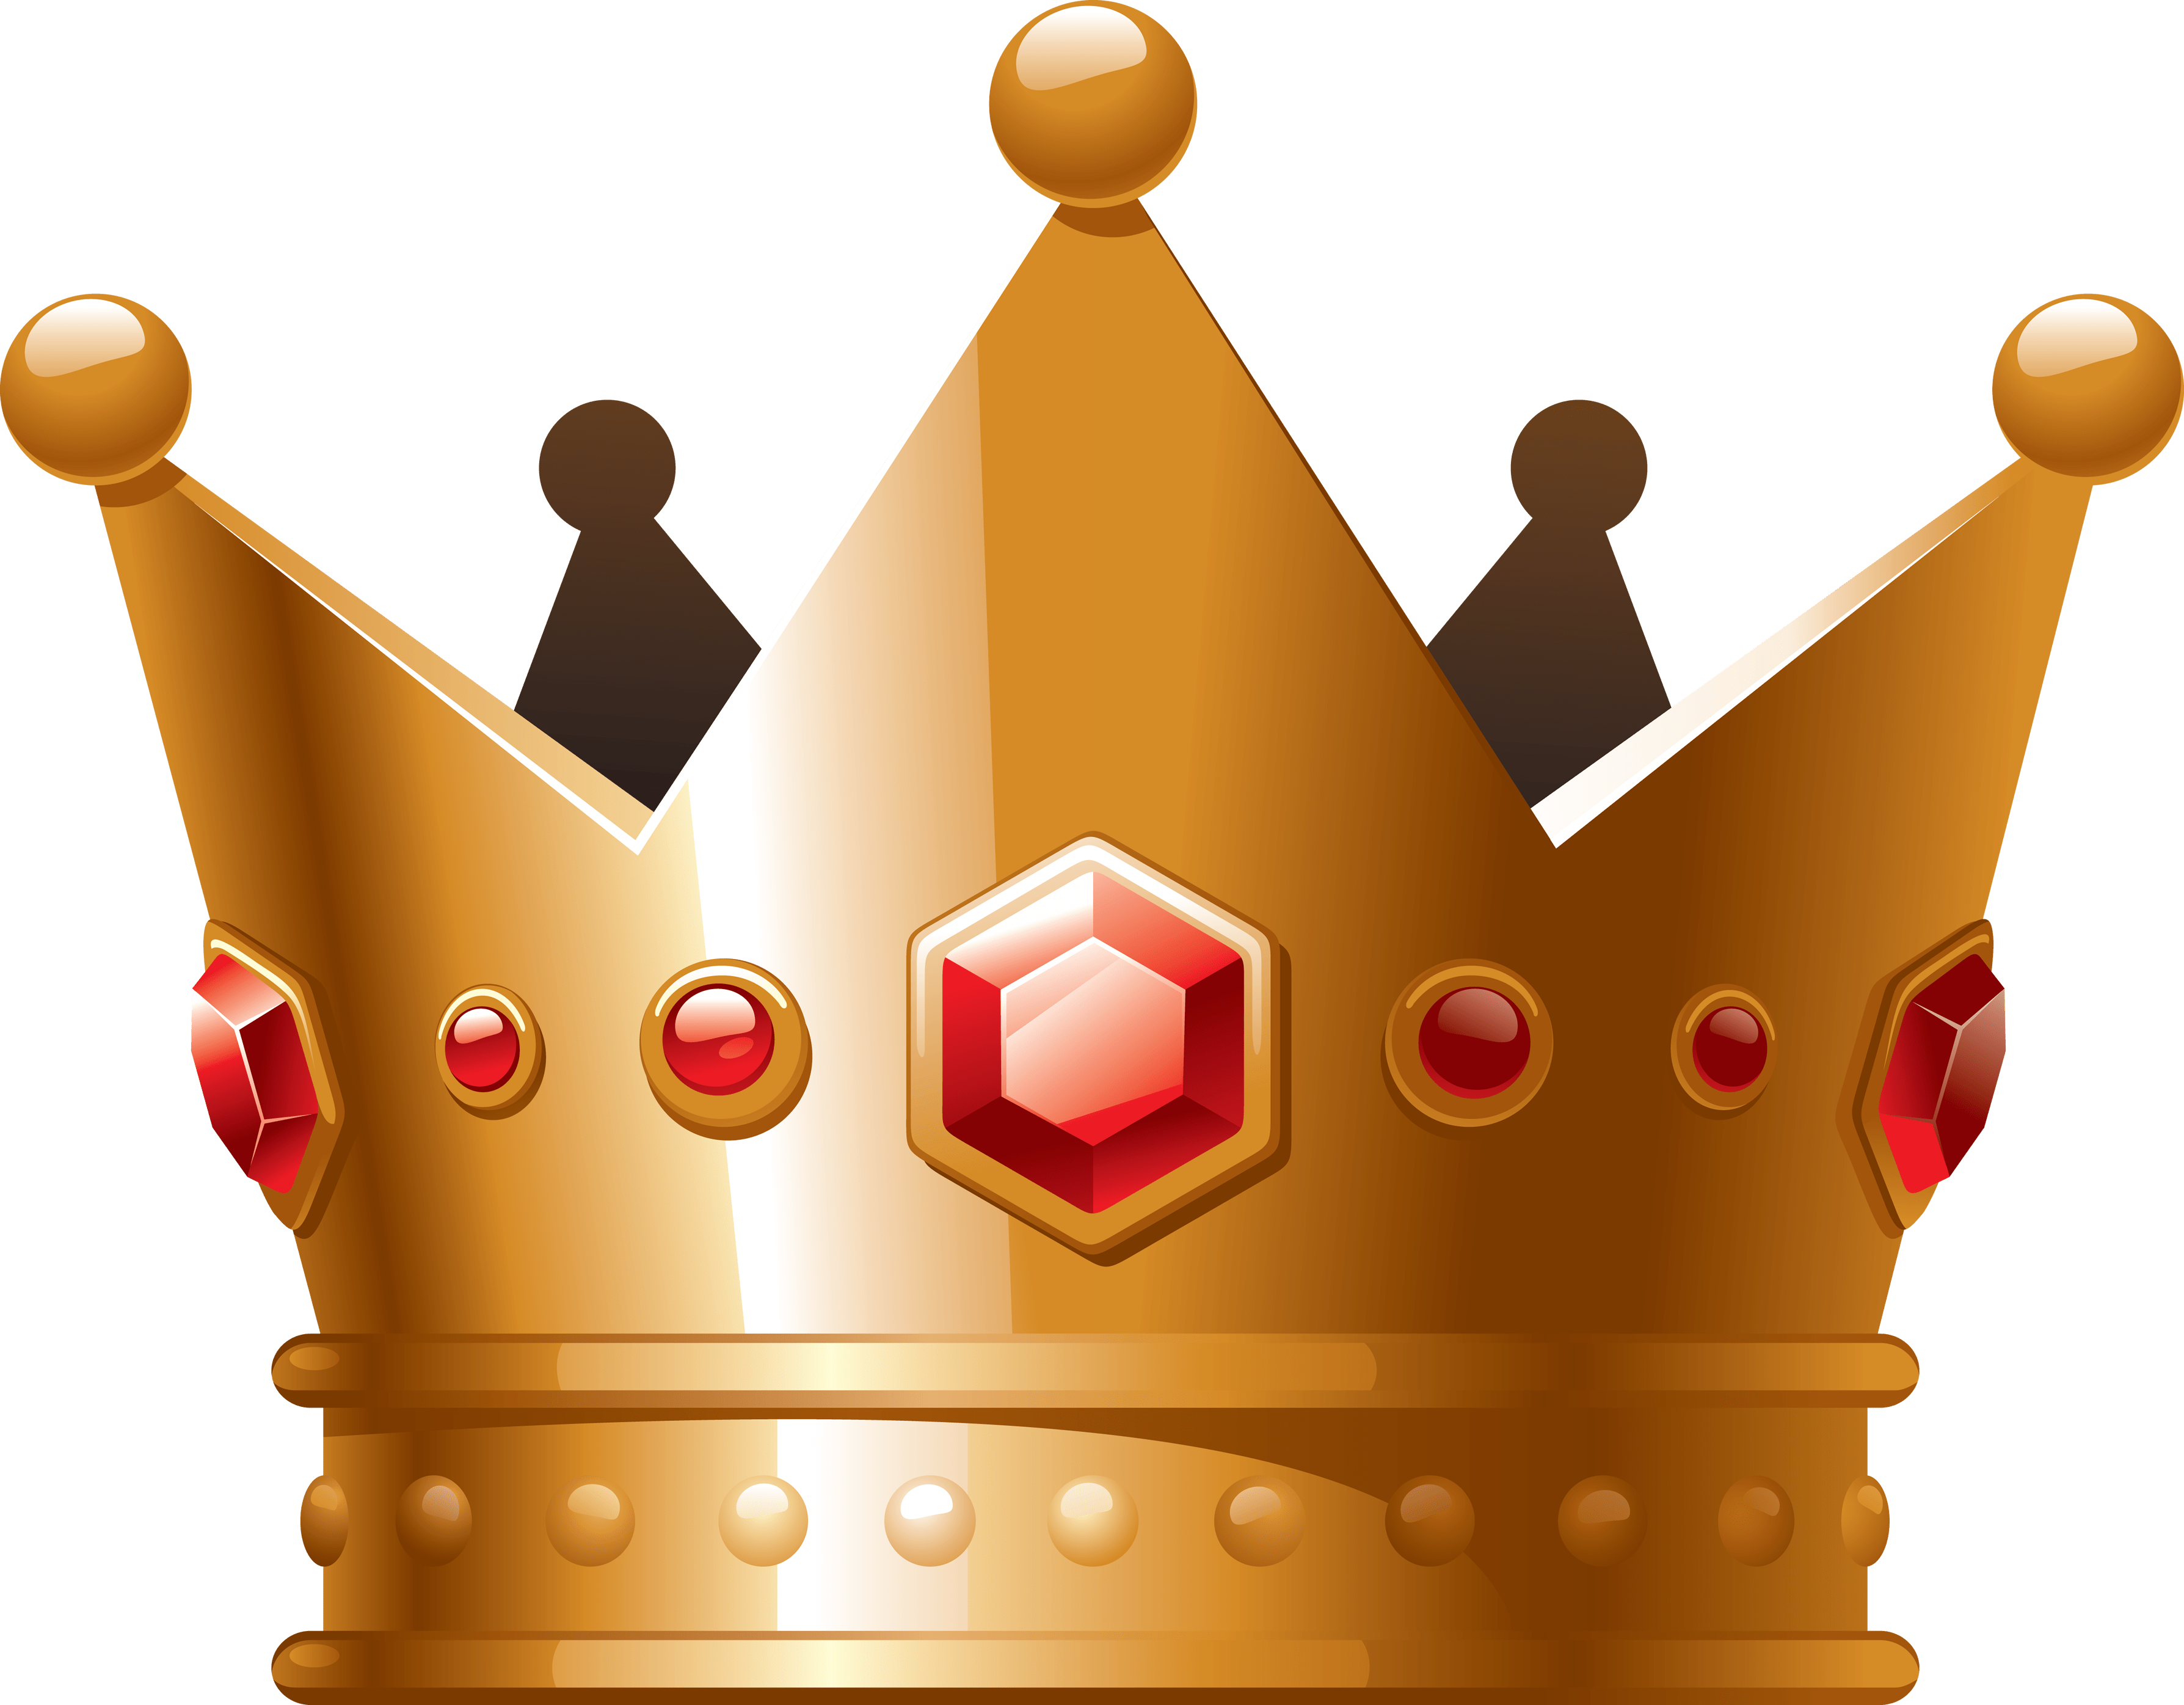 Gold bling crown clipart picture royalty free library Cartoon Crown Clipart transparent PNG - StickPNG picture royalty free library